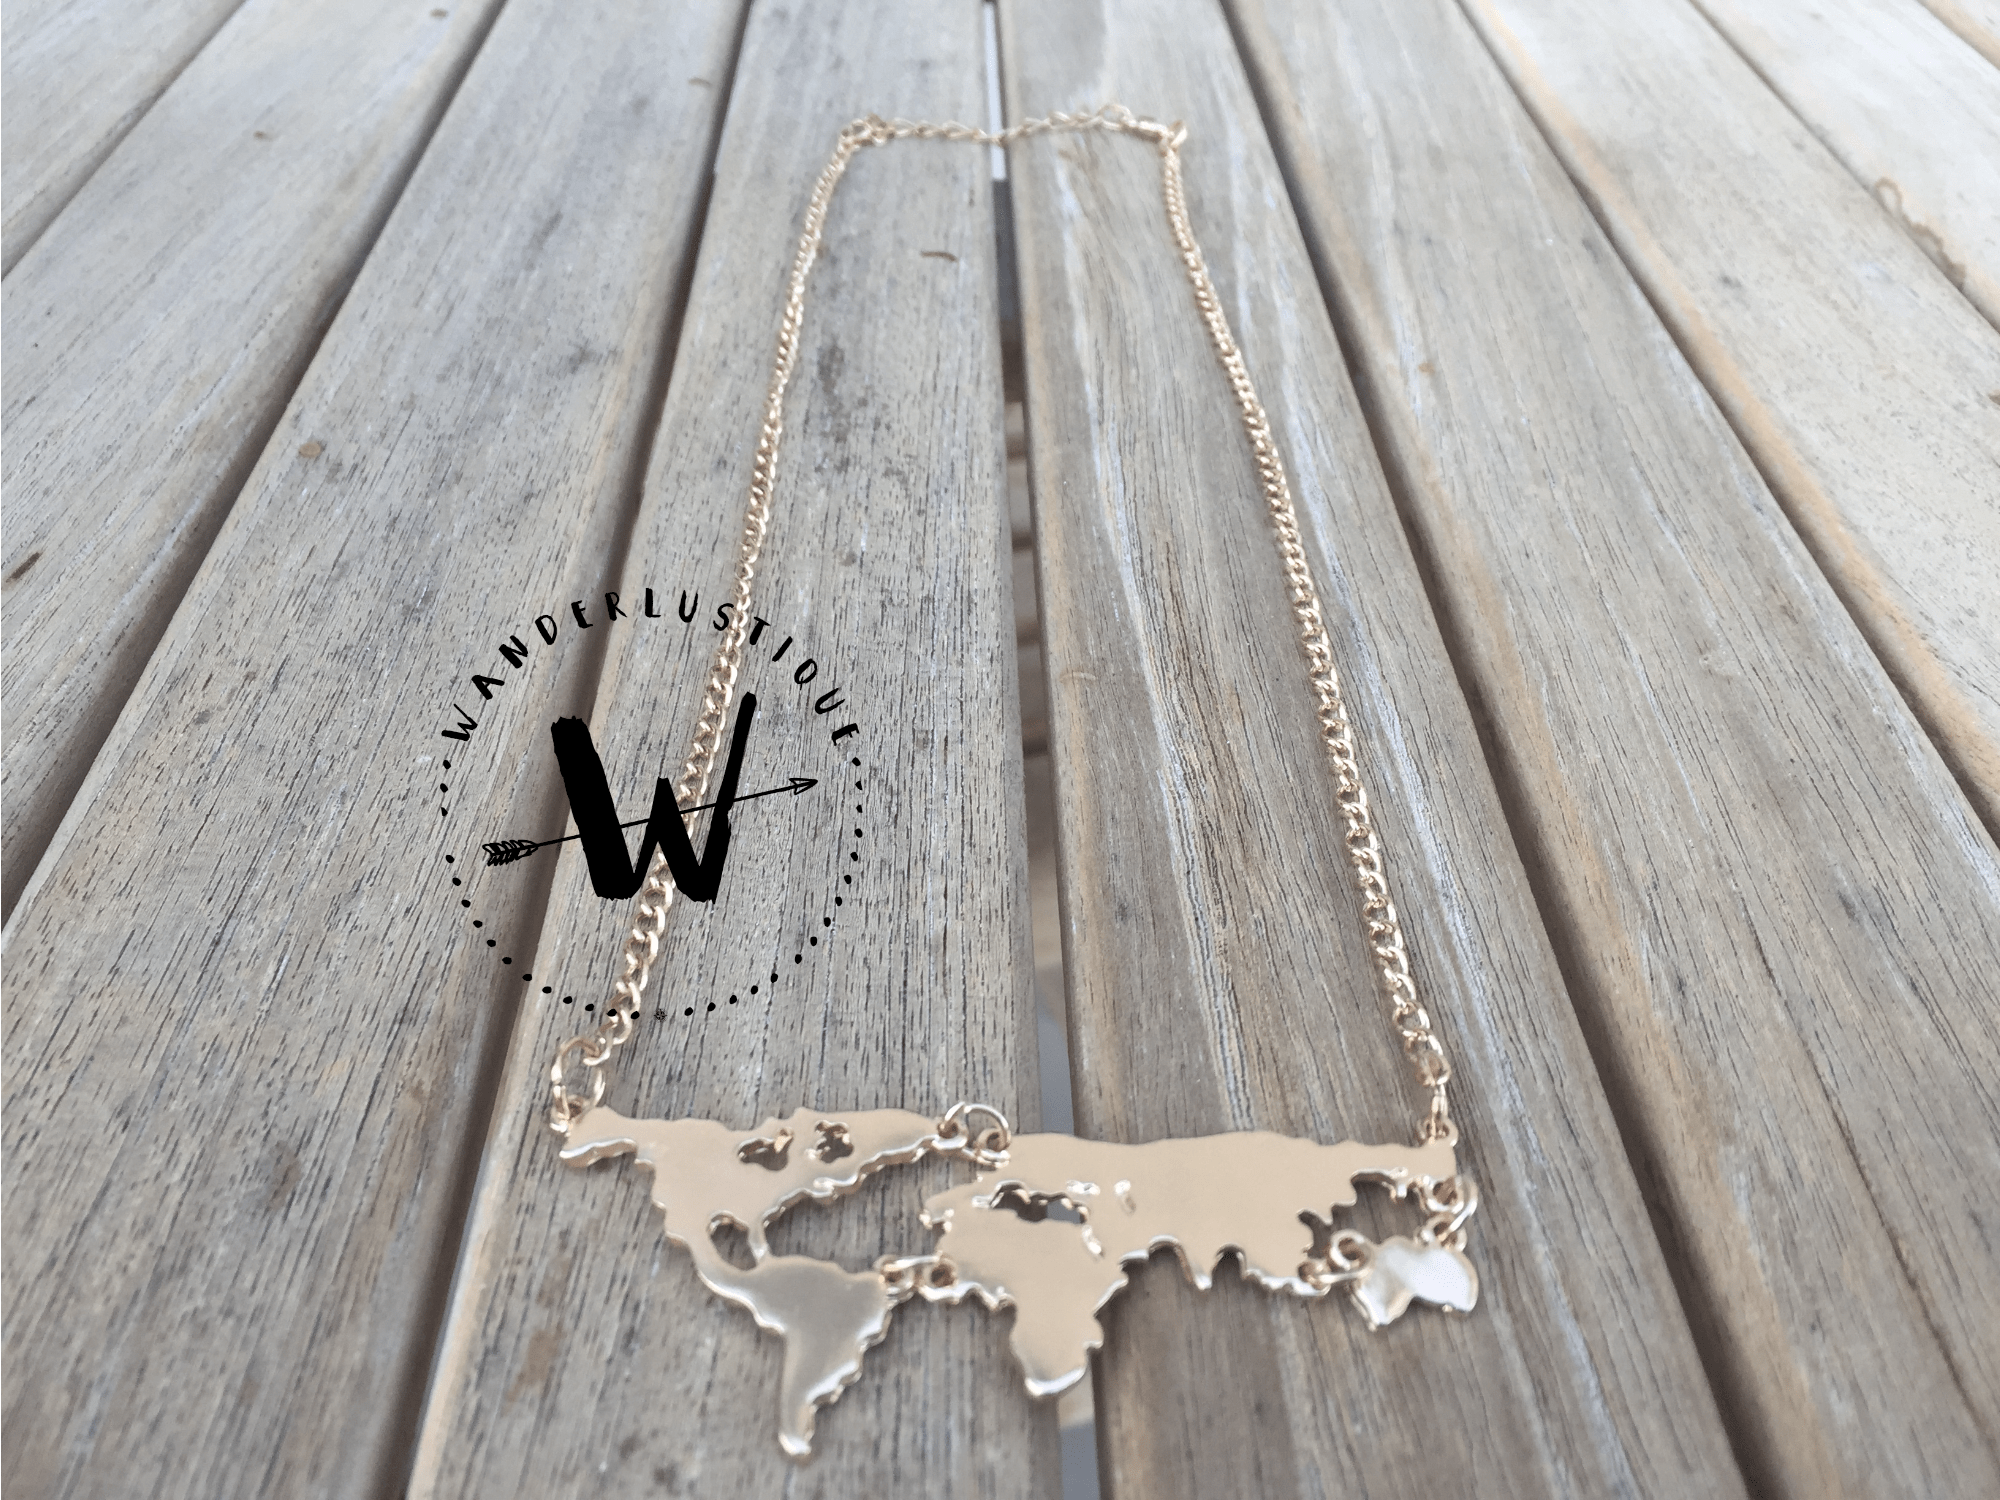 Premium flat world map necklace available in 3 different colors premium flat world map necklace available in 3 different colors free shipping worldwide gumiabroncs Images